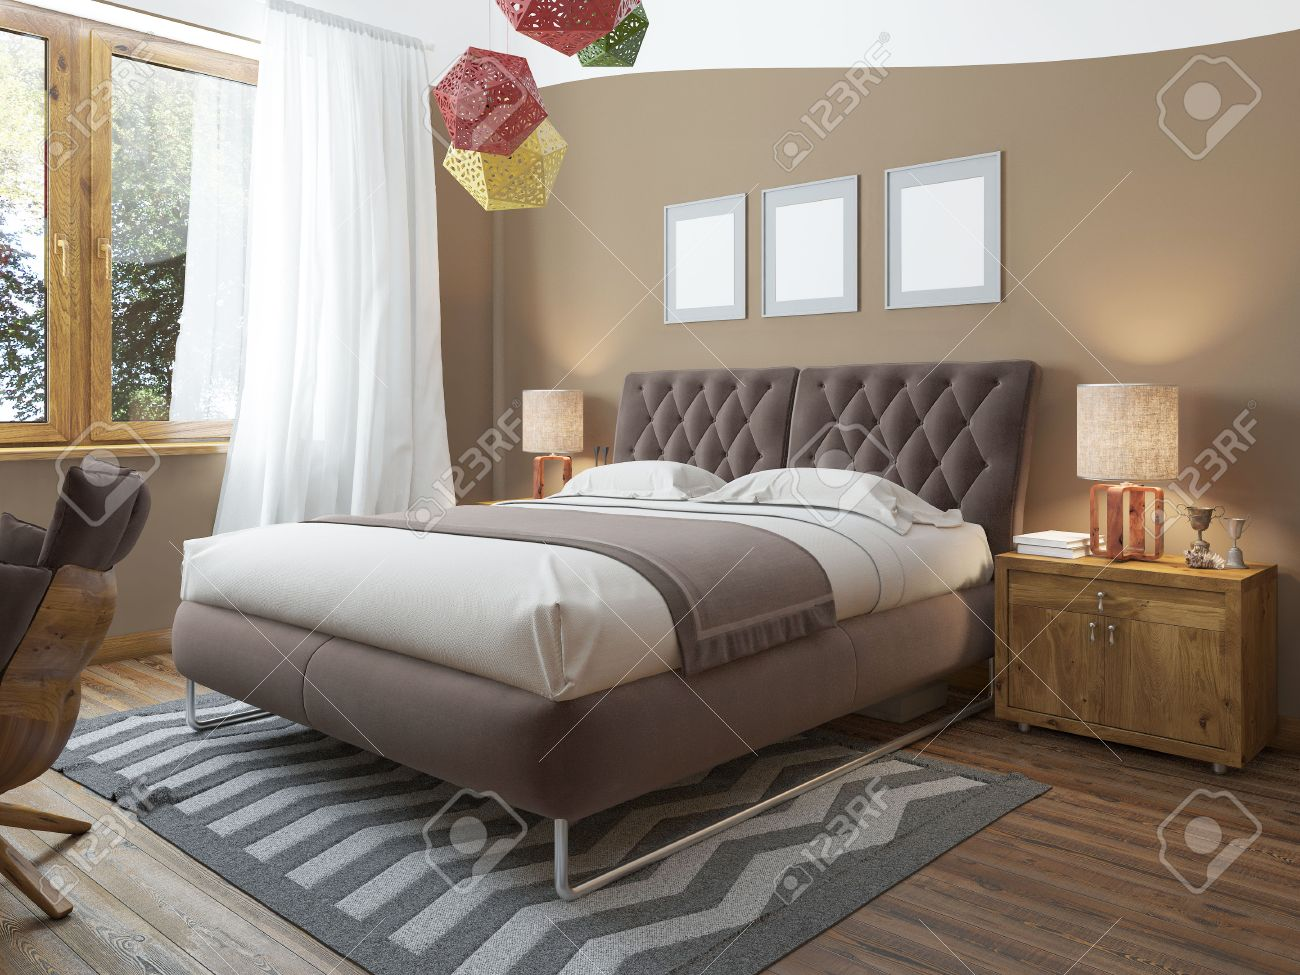 Schlafzimmer Hell Grau Stock Photo